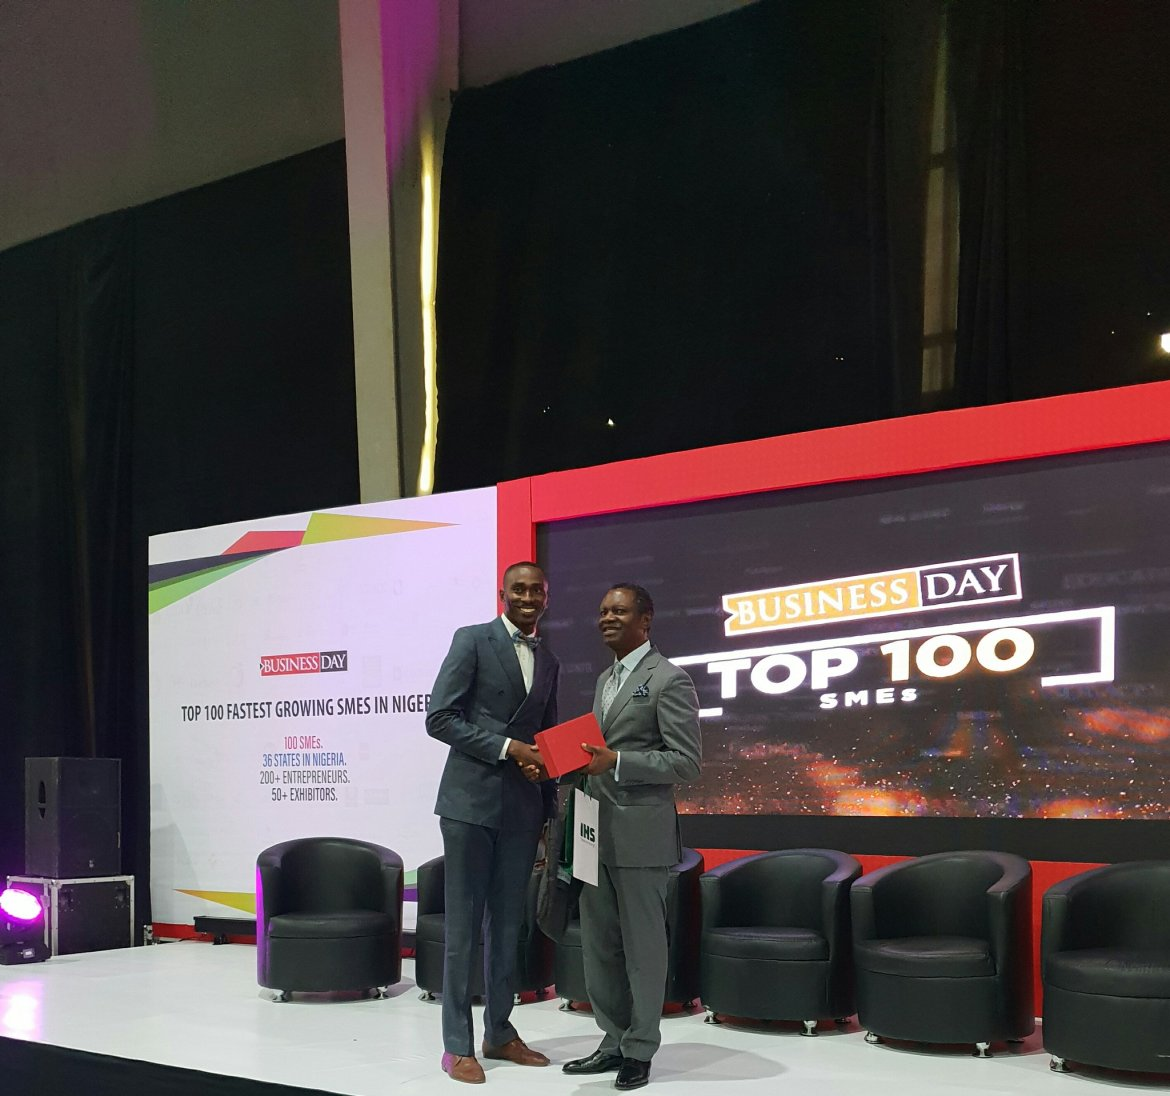 The Top 100 Fastest Growing SMEs in Nigeria